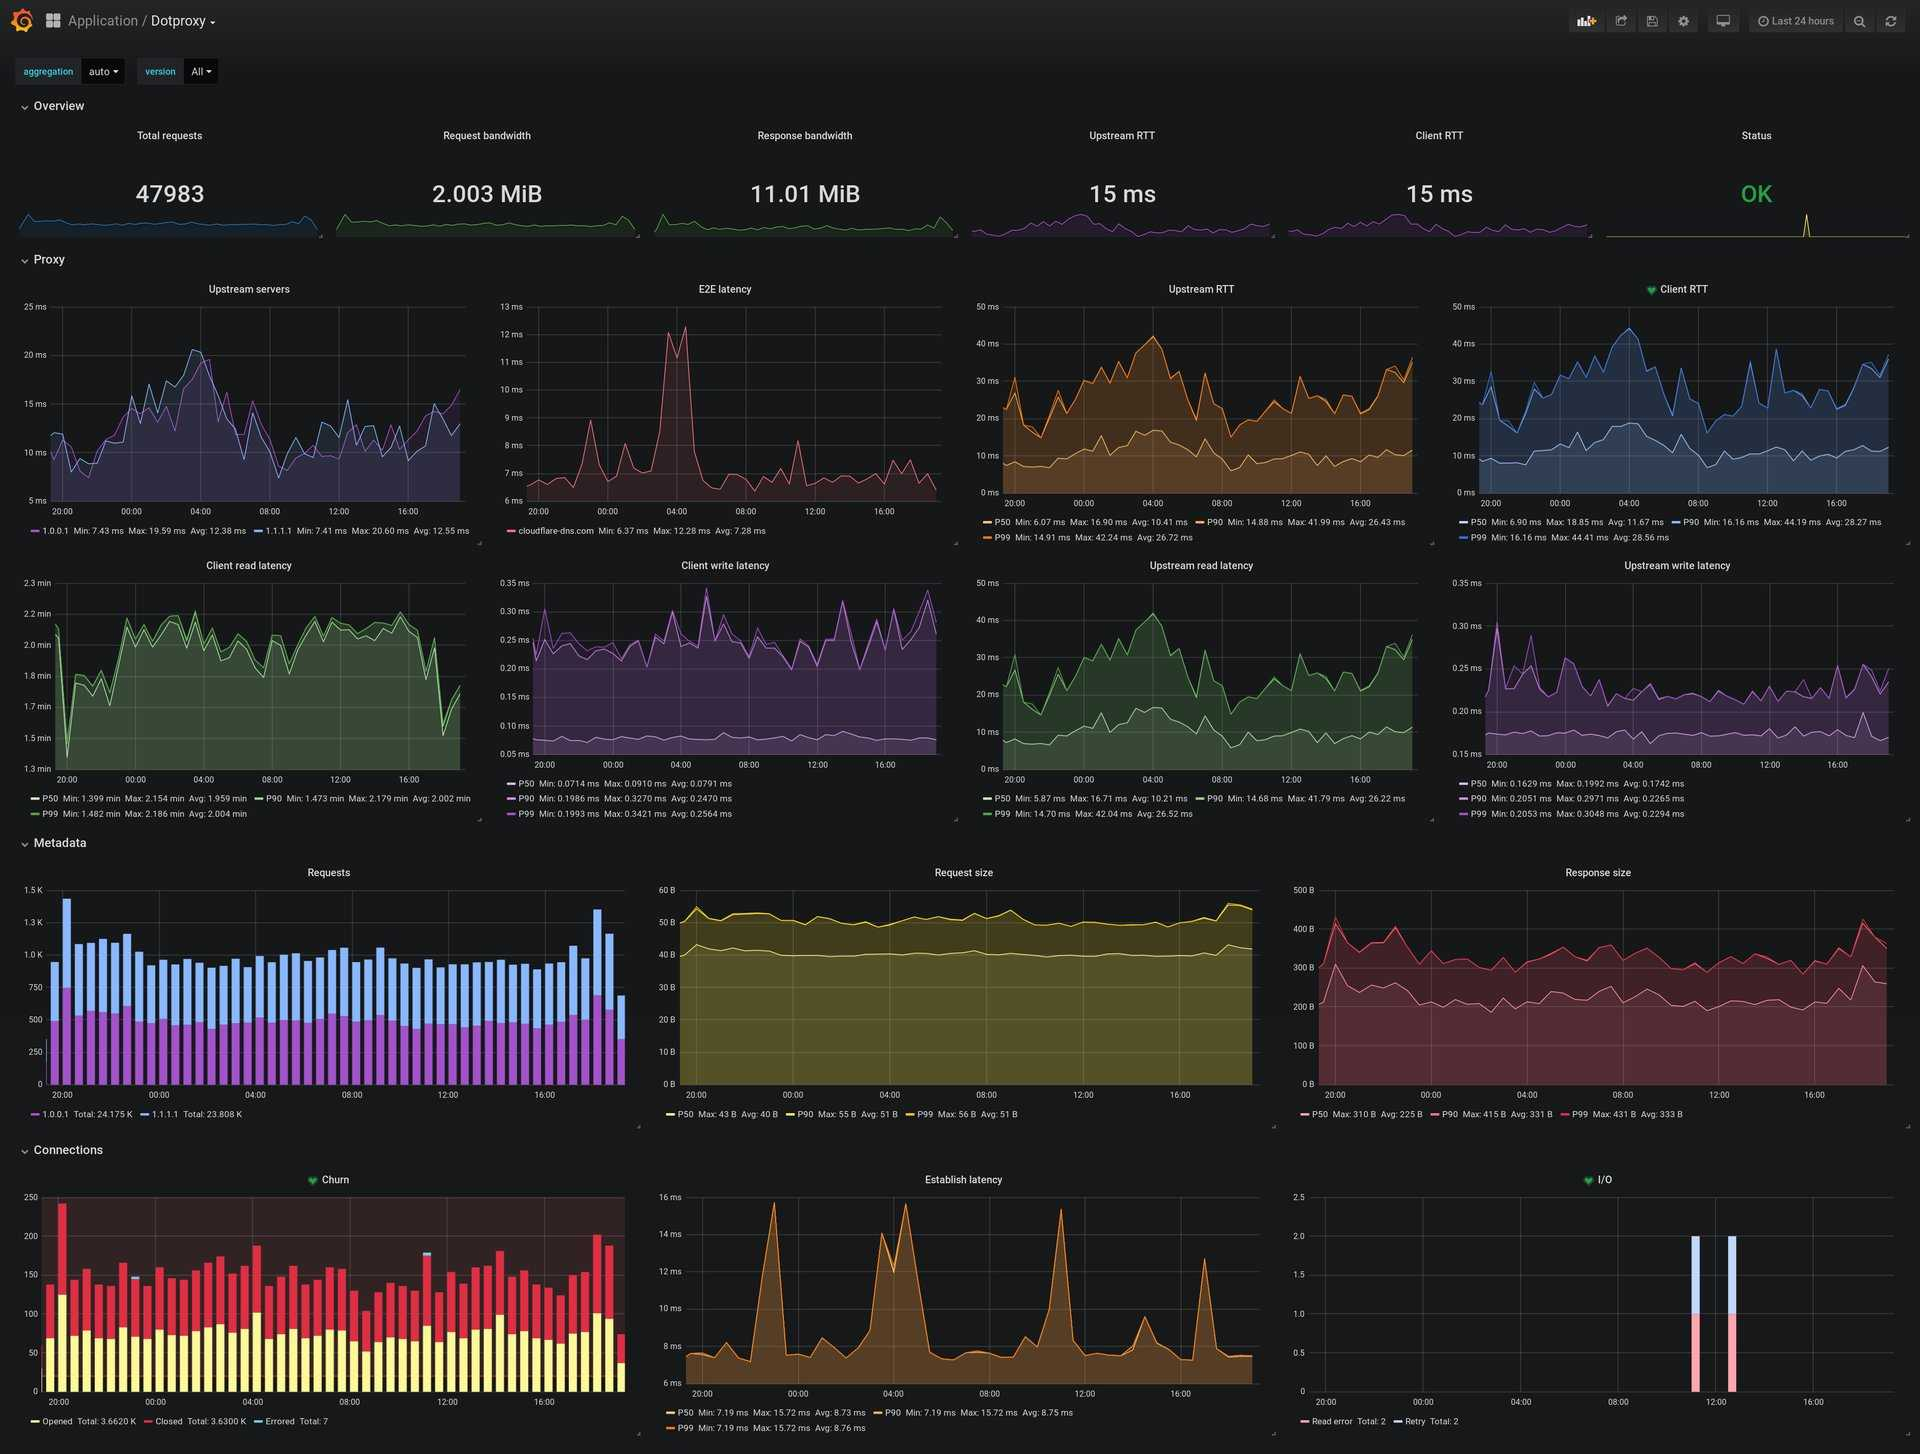 Edge performance dashboard